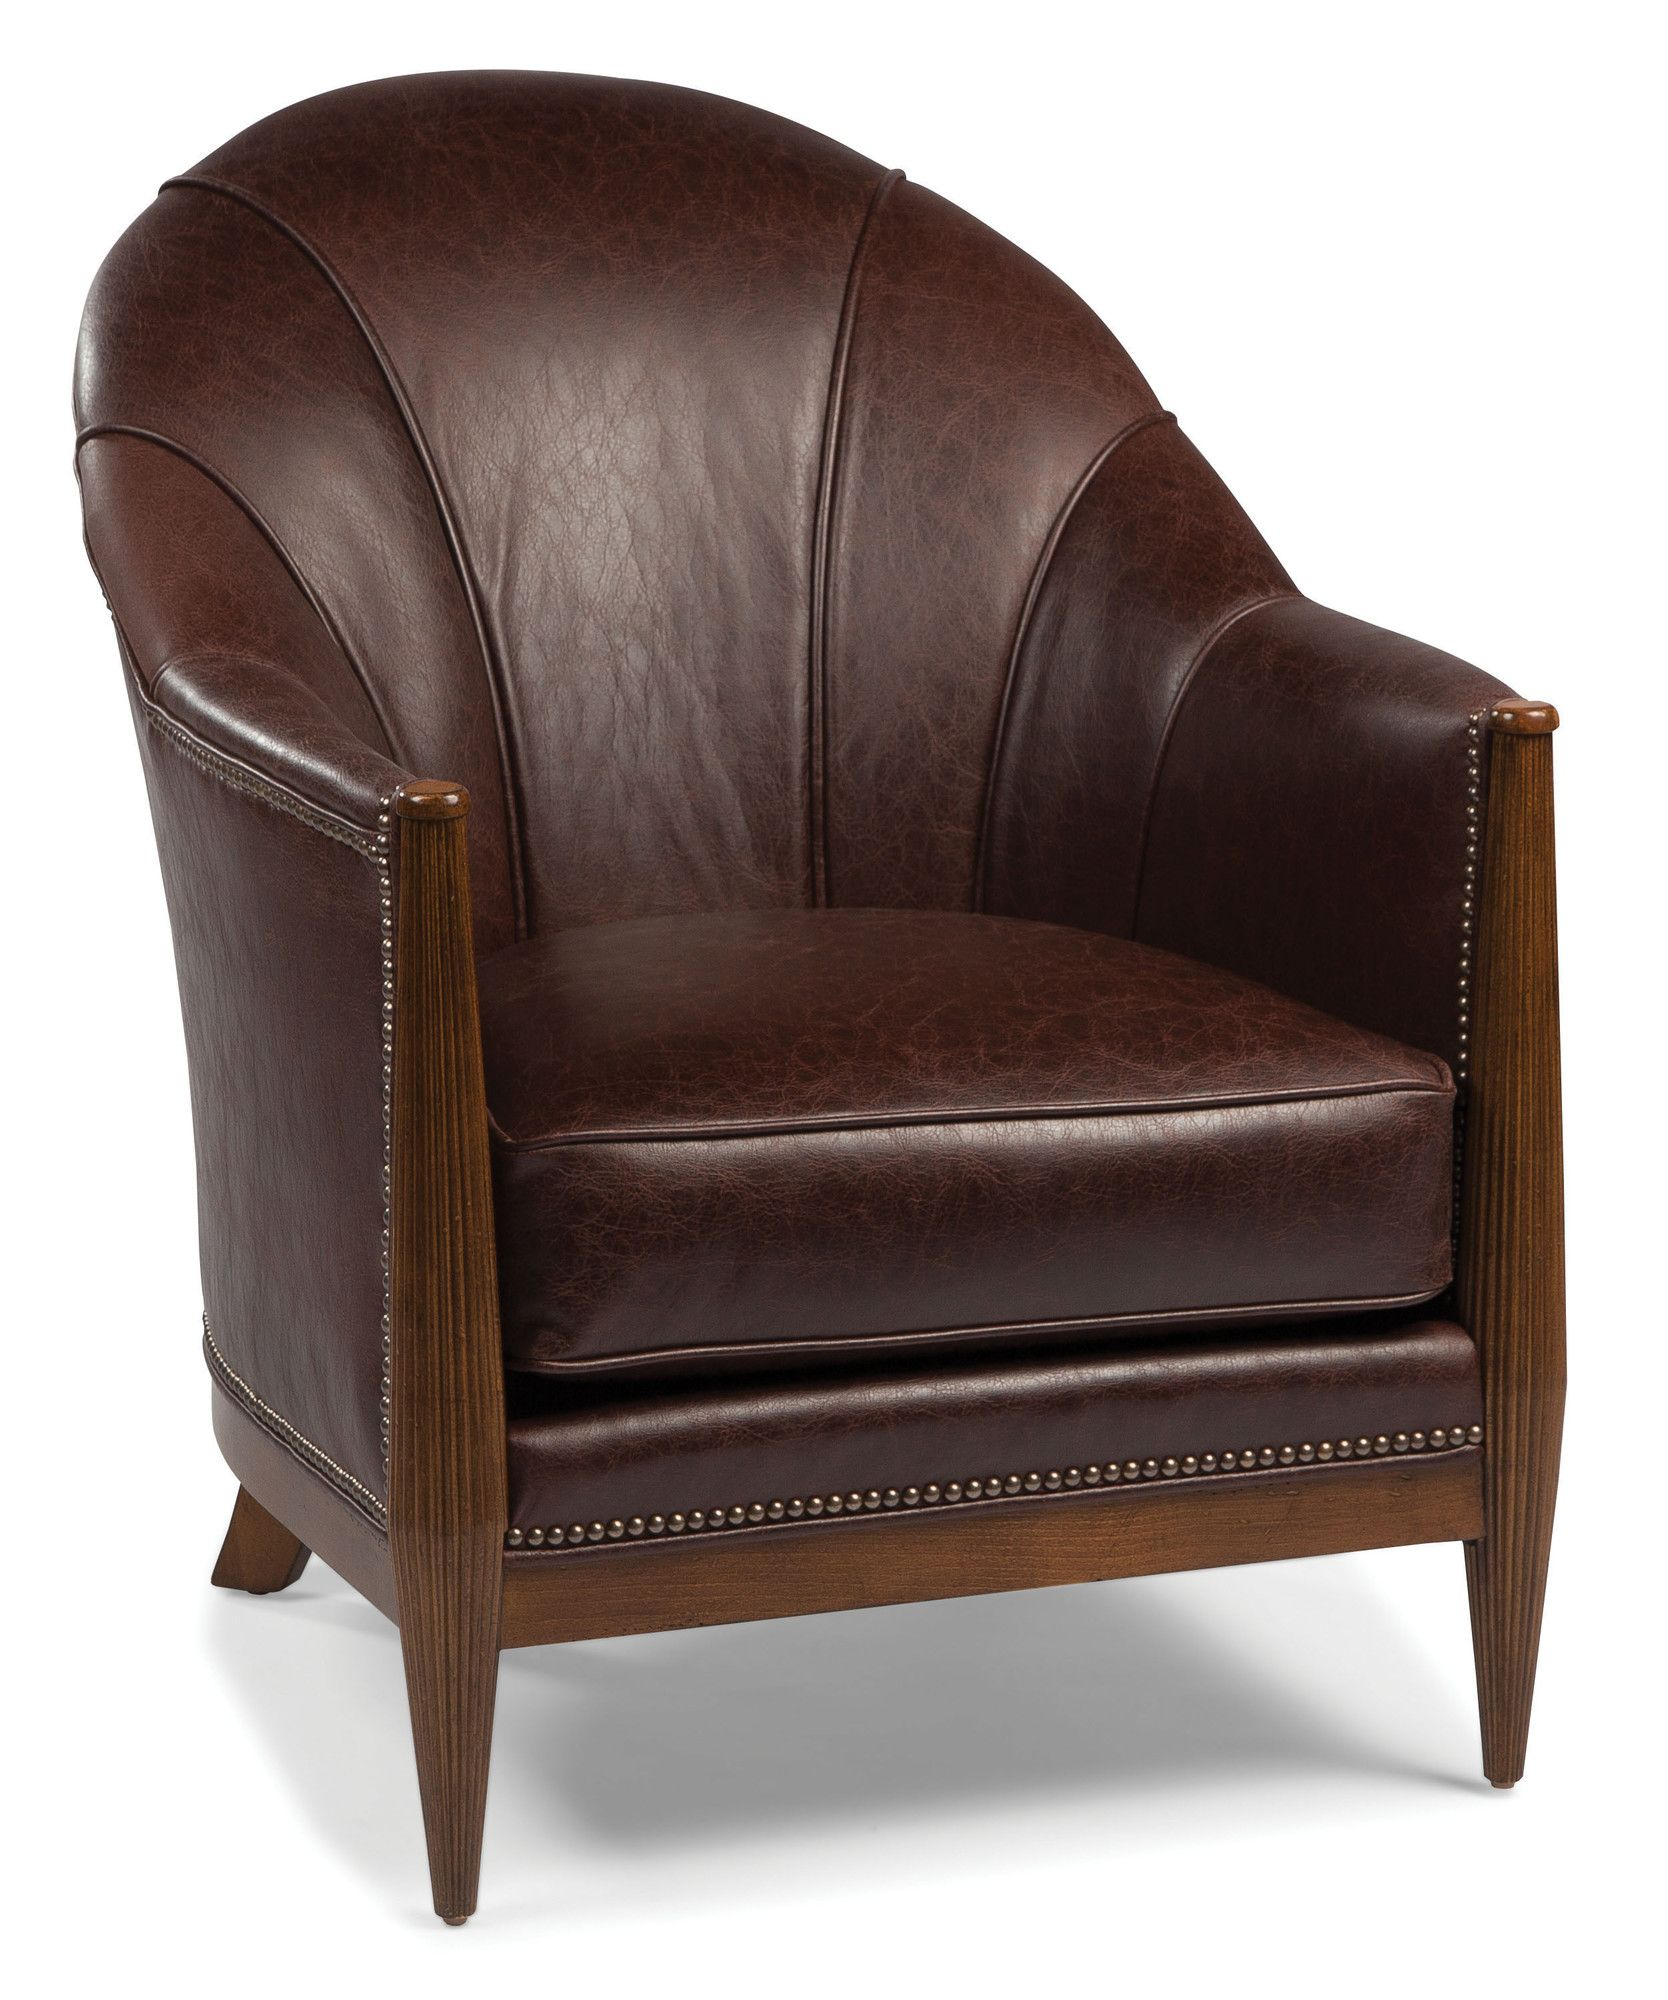 Fairfield Chair Round Back Wood Trimmed Lounge Chair